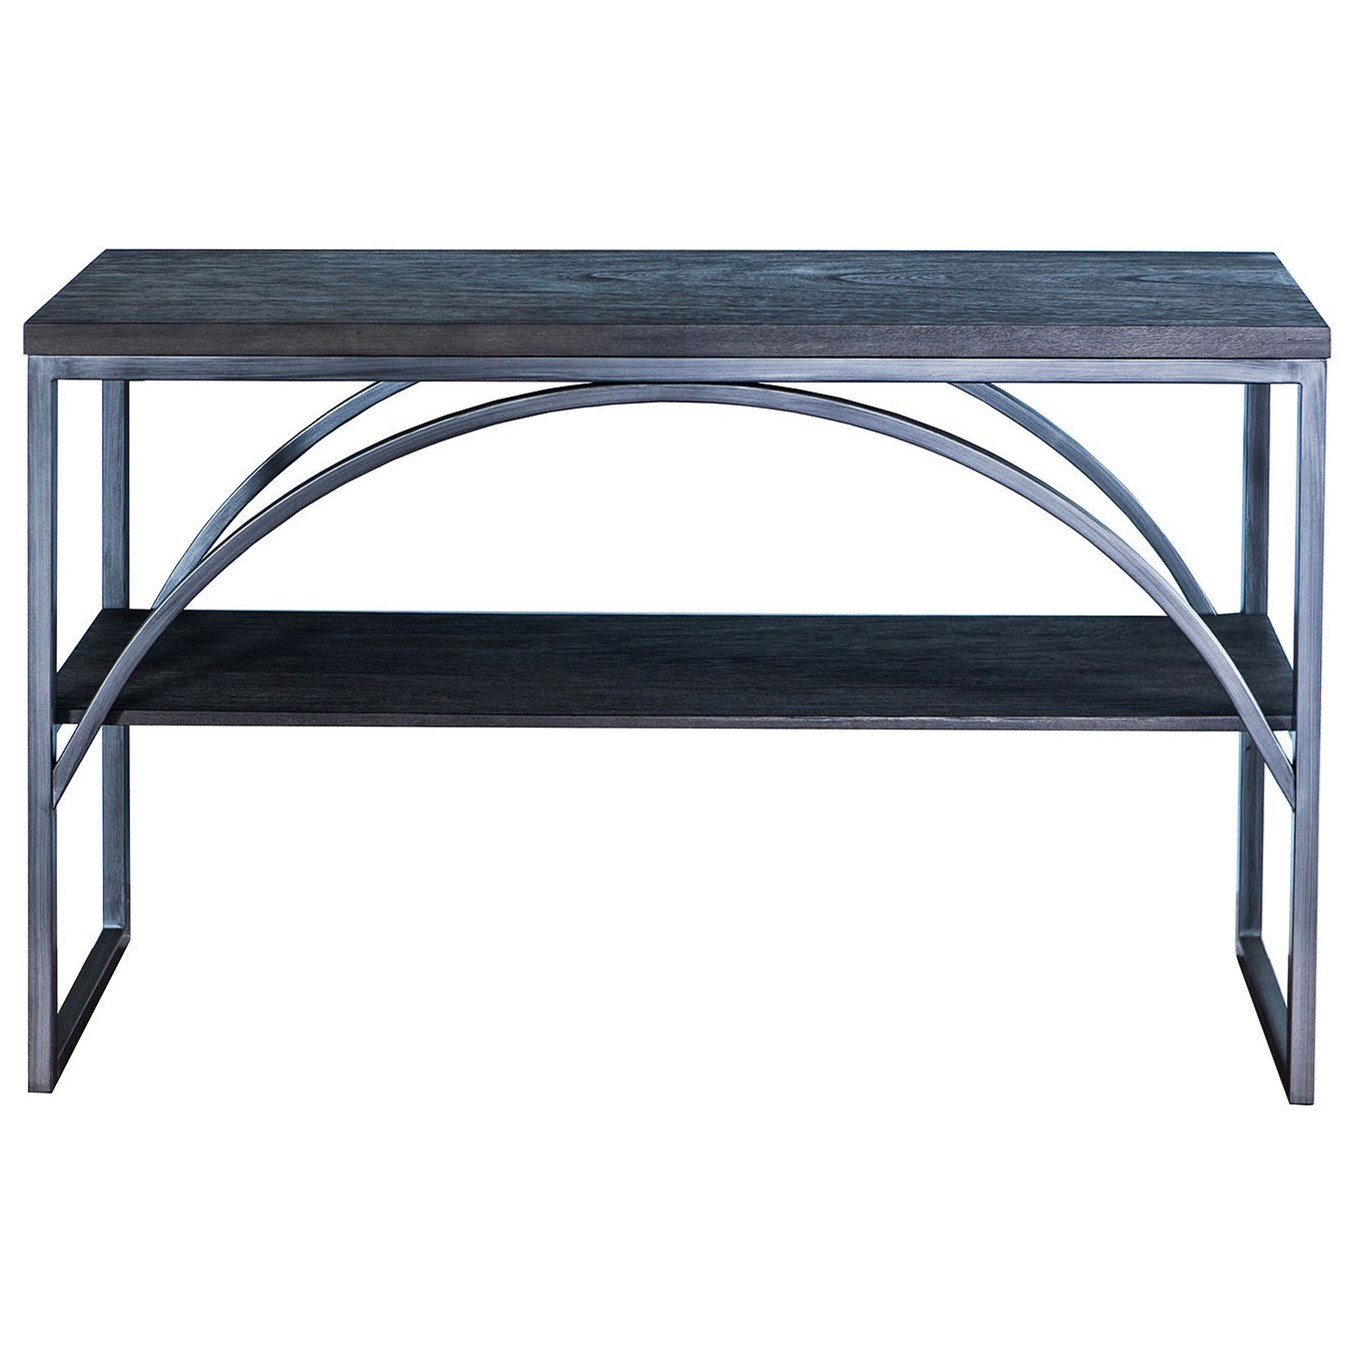 7332 Sofa Table by Lane at Esprit Decor Home Furnishings